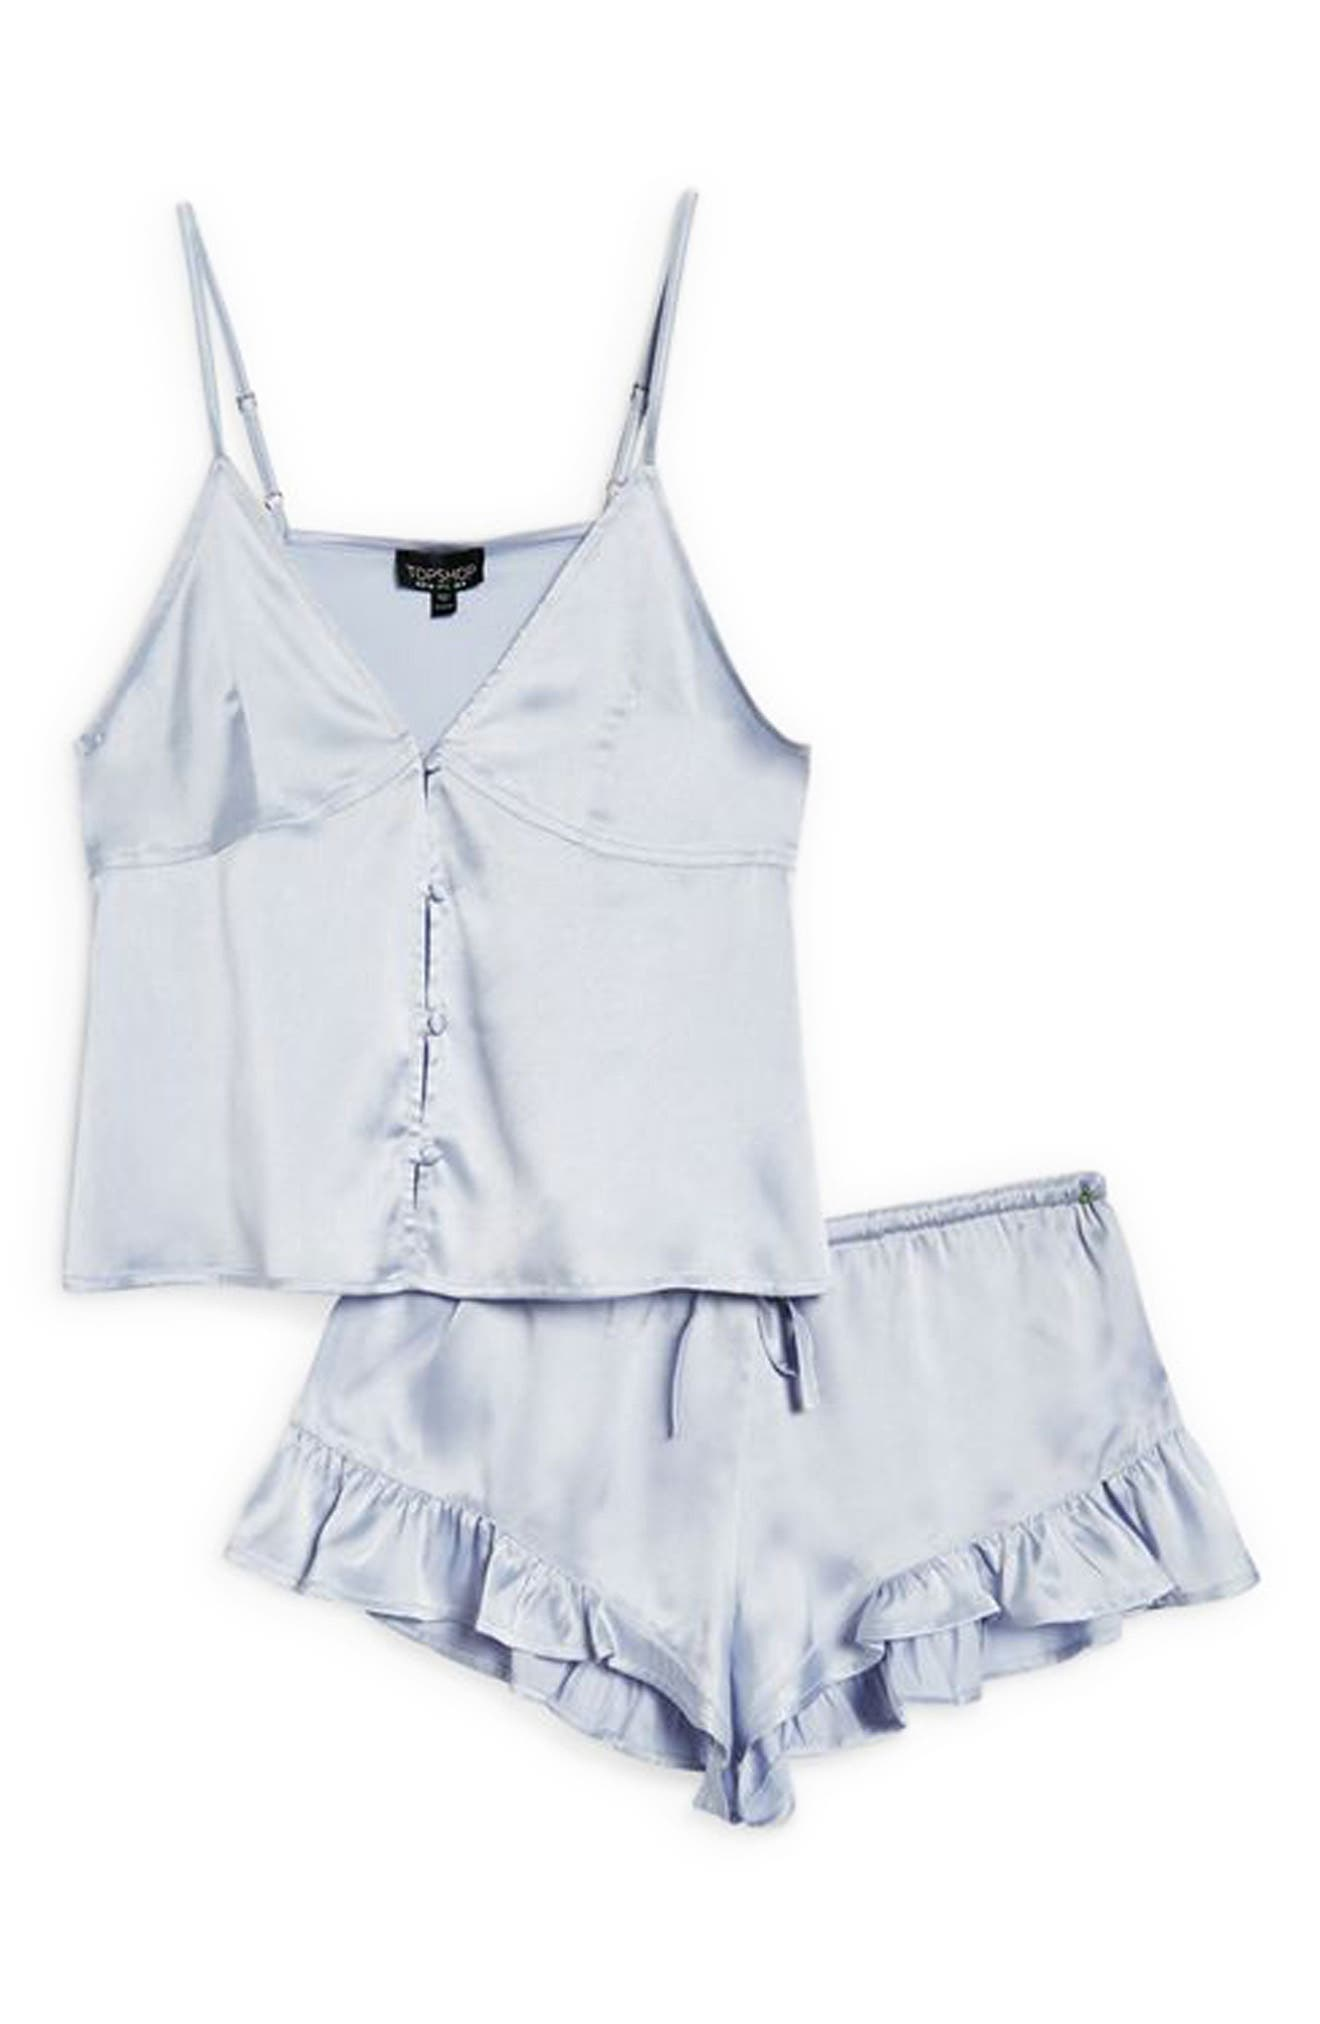 Lucina Satin Short Pajamas,                             Alternate thumbnail 3, color,                             450